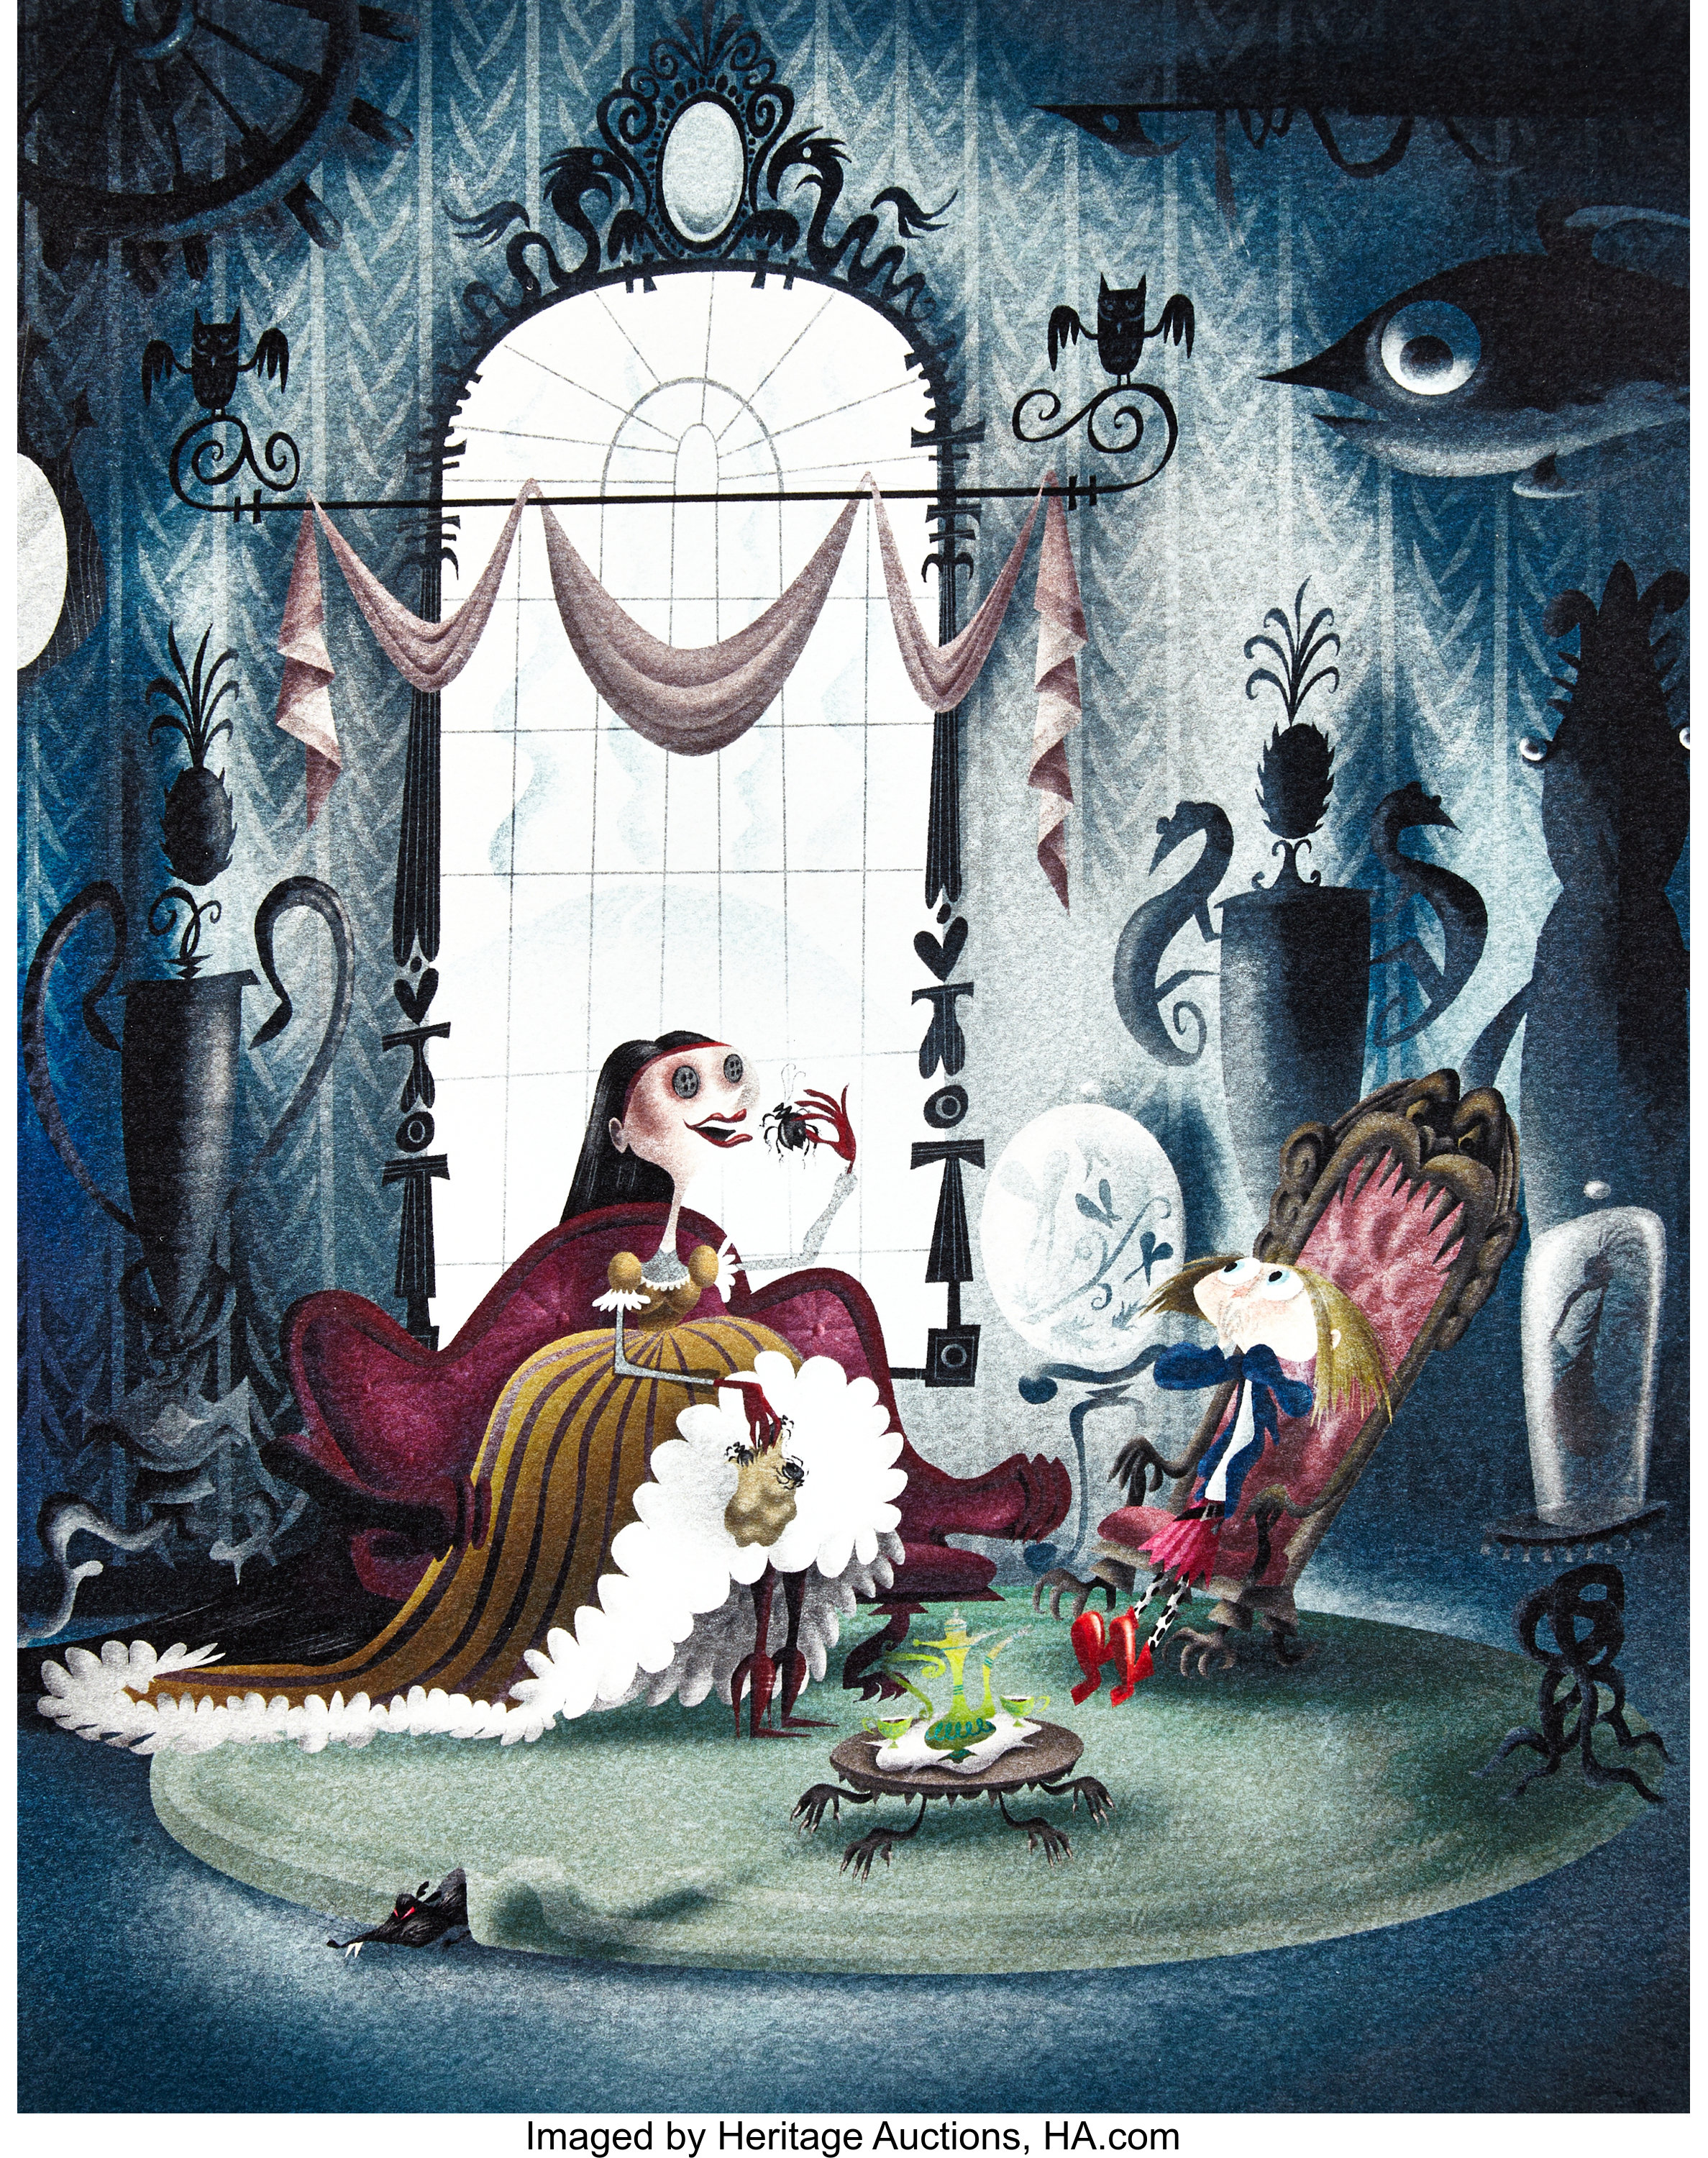 Coraline Other Mother Eating Spiders Lithograph Laika 2009 Lot 94030 Heritage Auctions